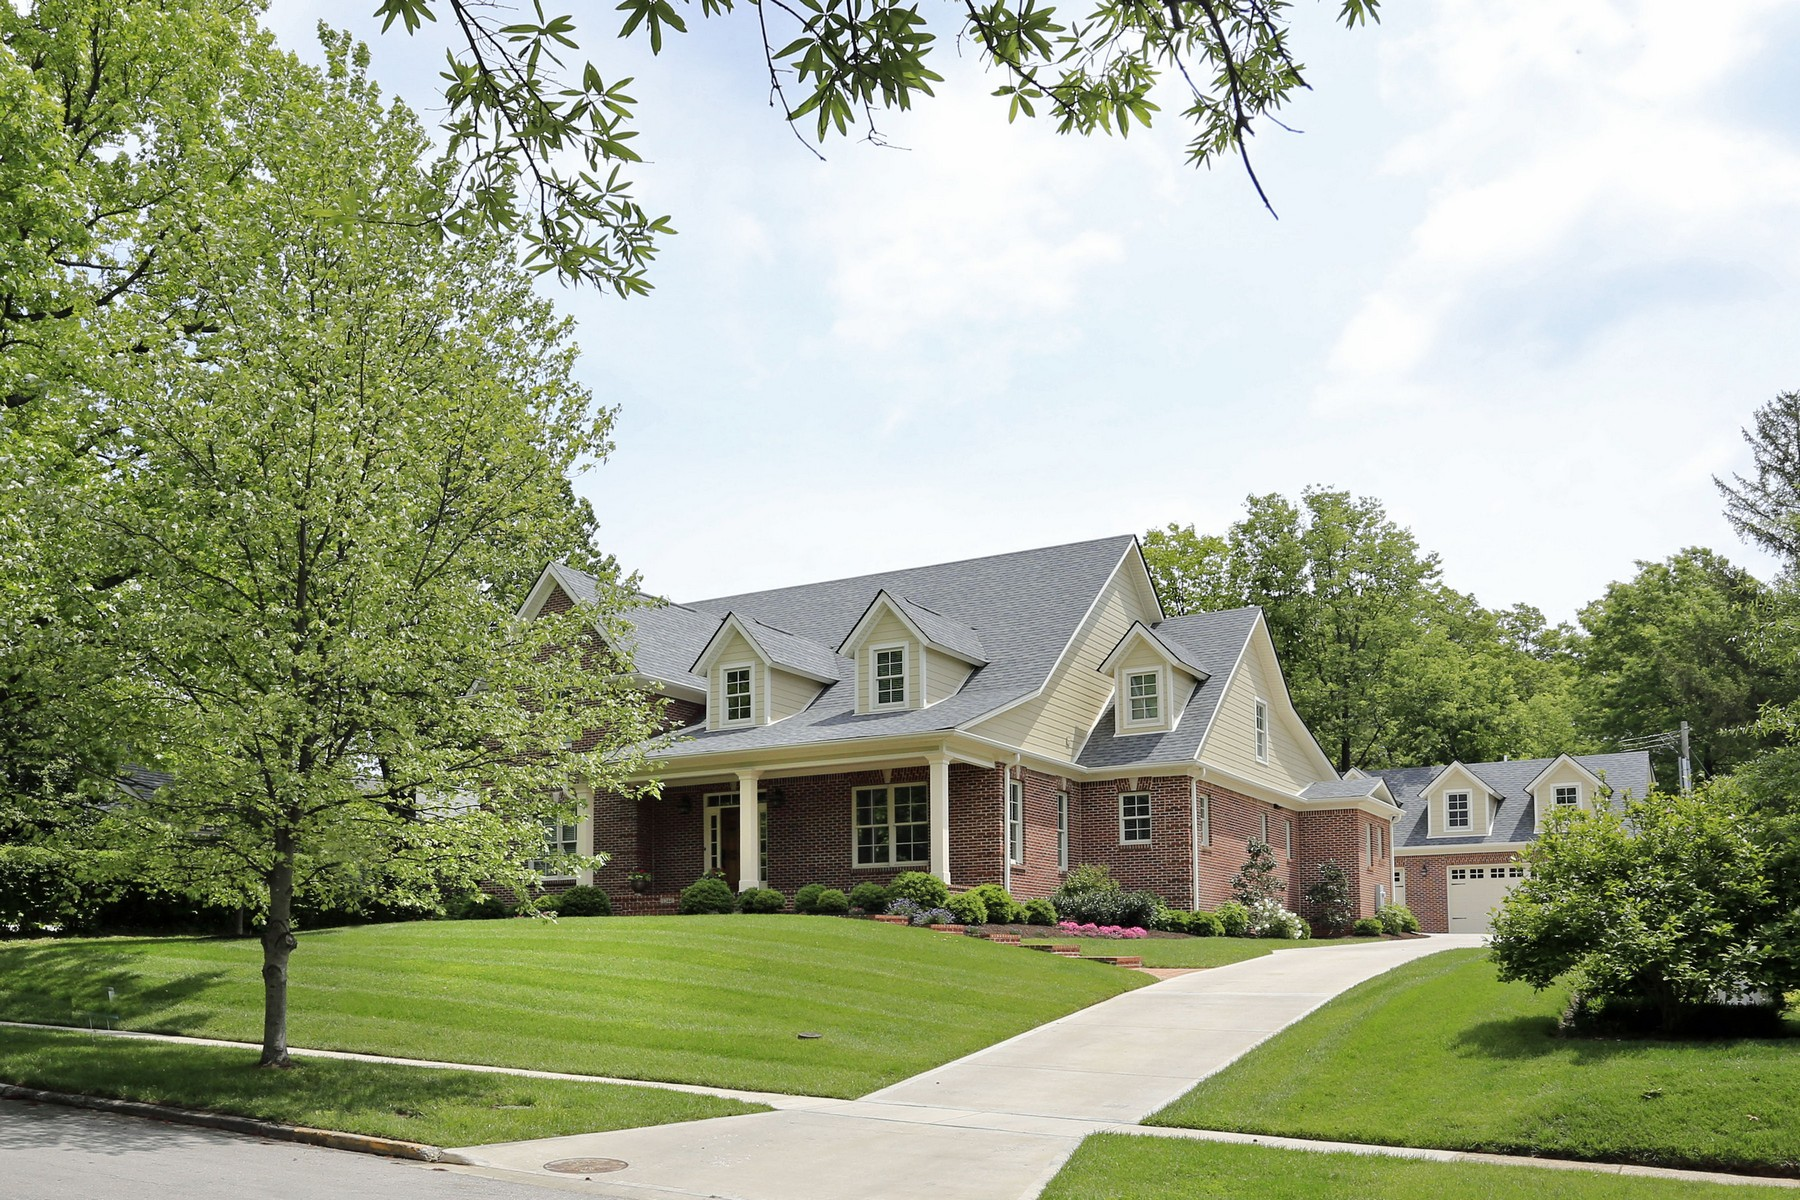 Casa Unifamiliar por un Venta en 1244 Summit Drive Lexington, Kentucky, 40502 Estados Unidos